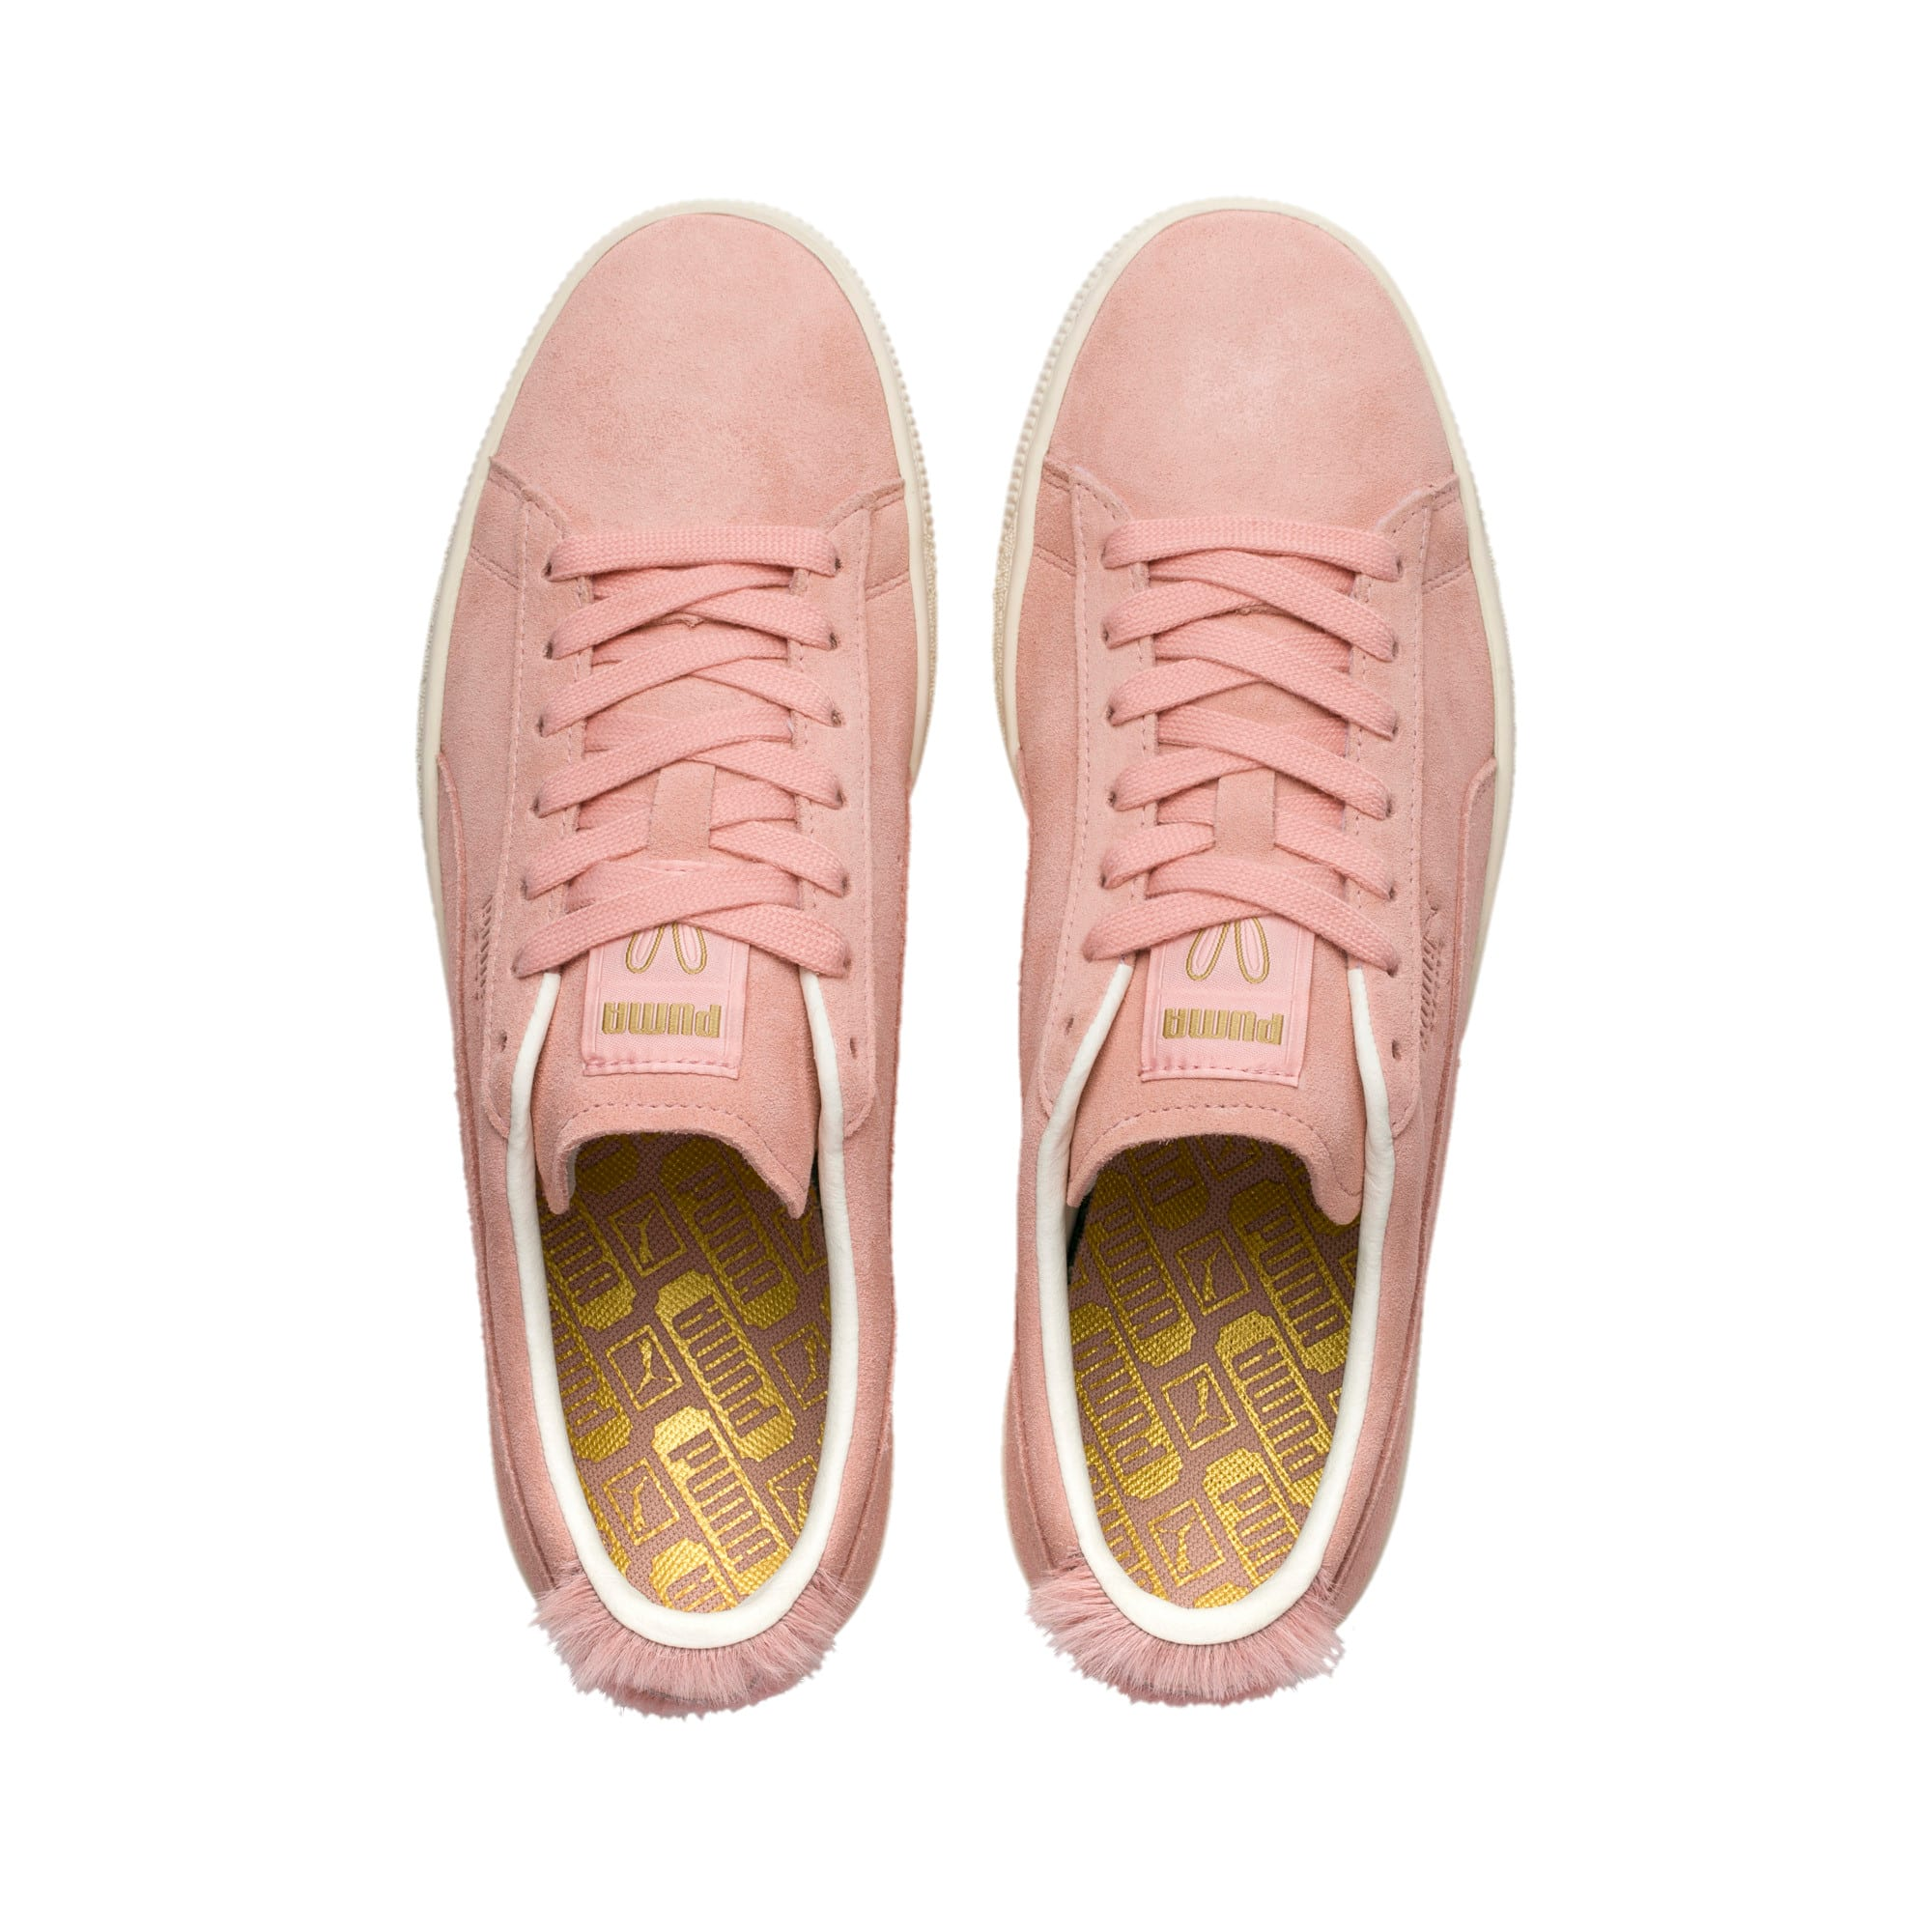 Thumbnail 6 of Suede Classic Easter Sneakers, Coral Cloud-Whisper White, medium